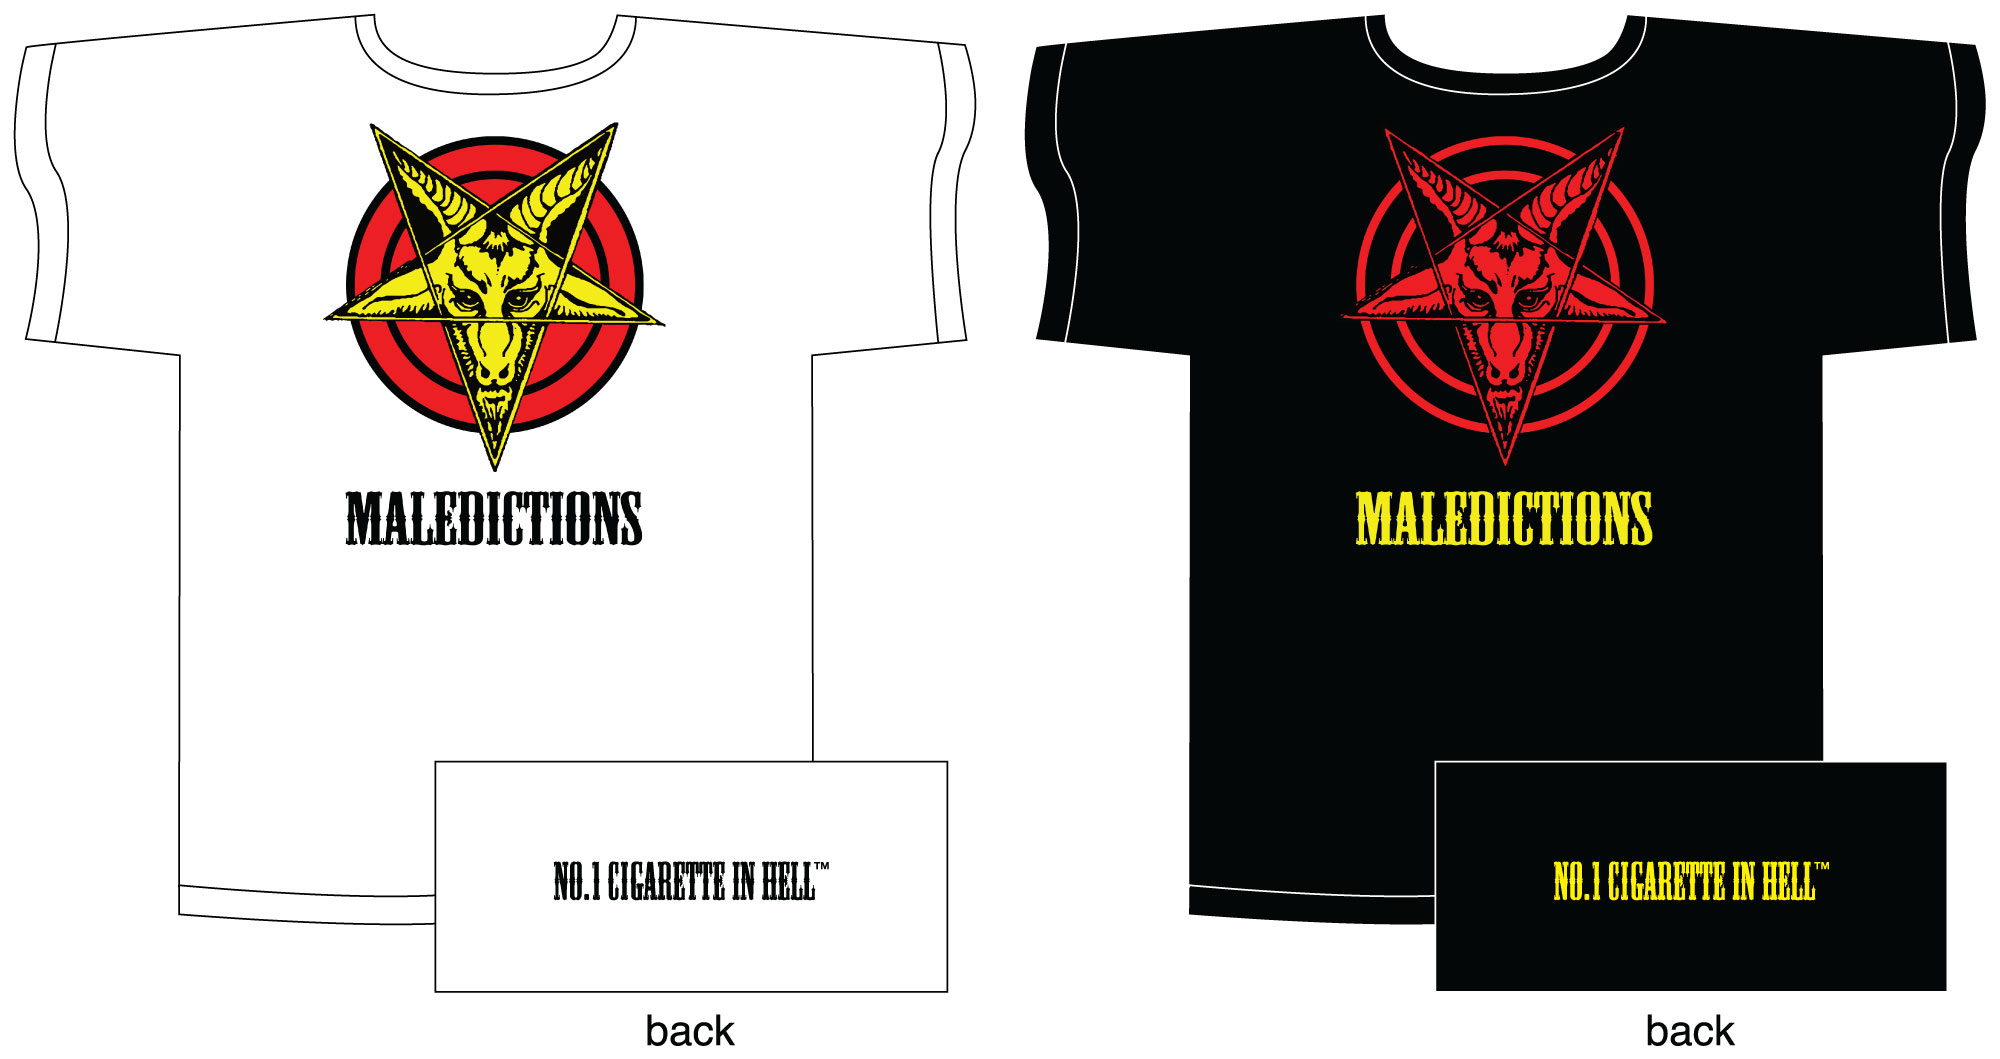 Maledictions-shirts-2019.jpg